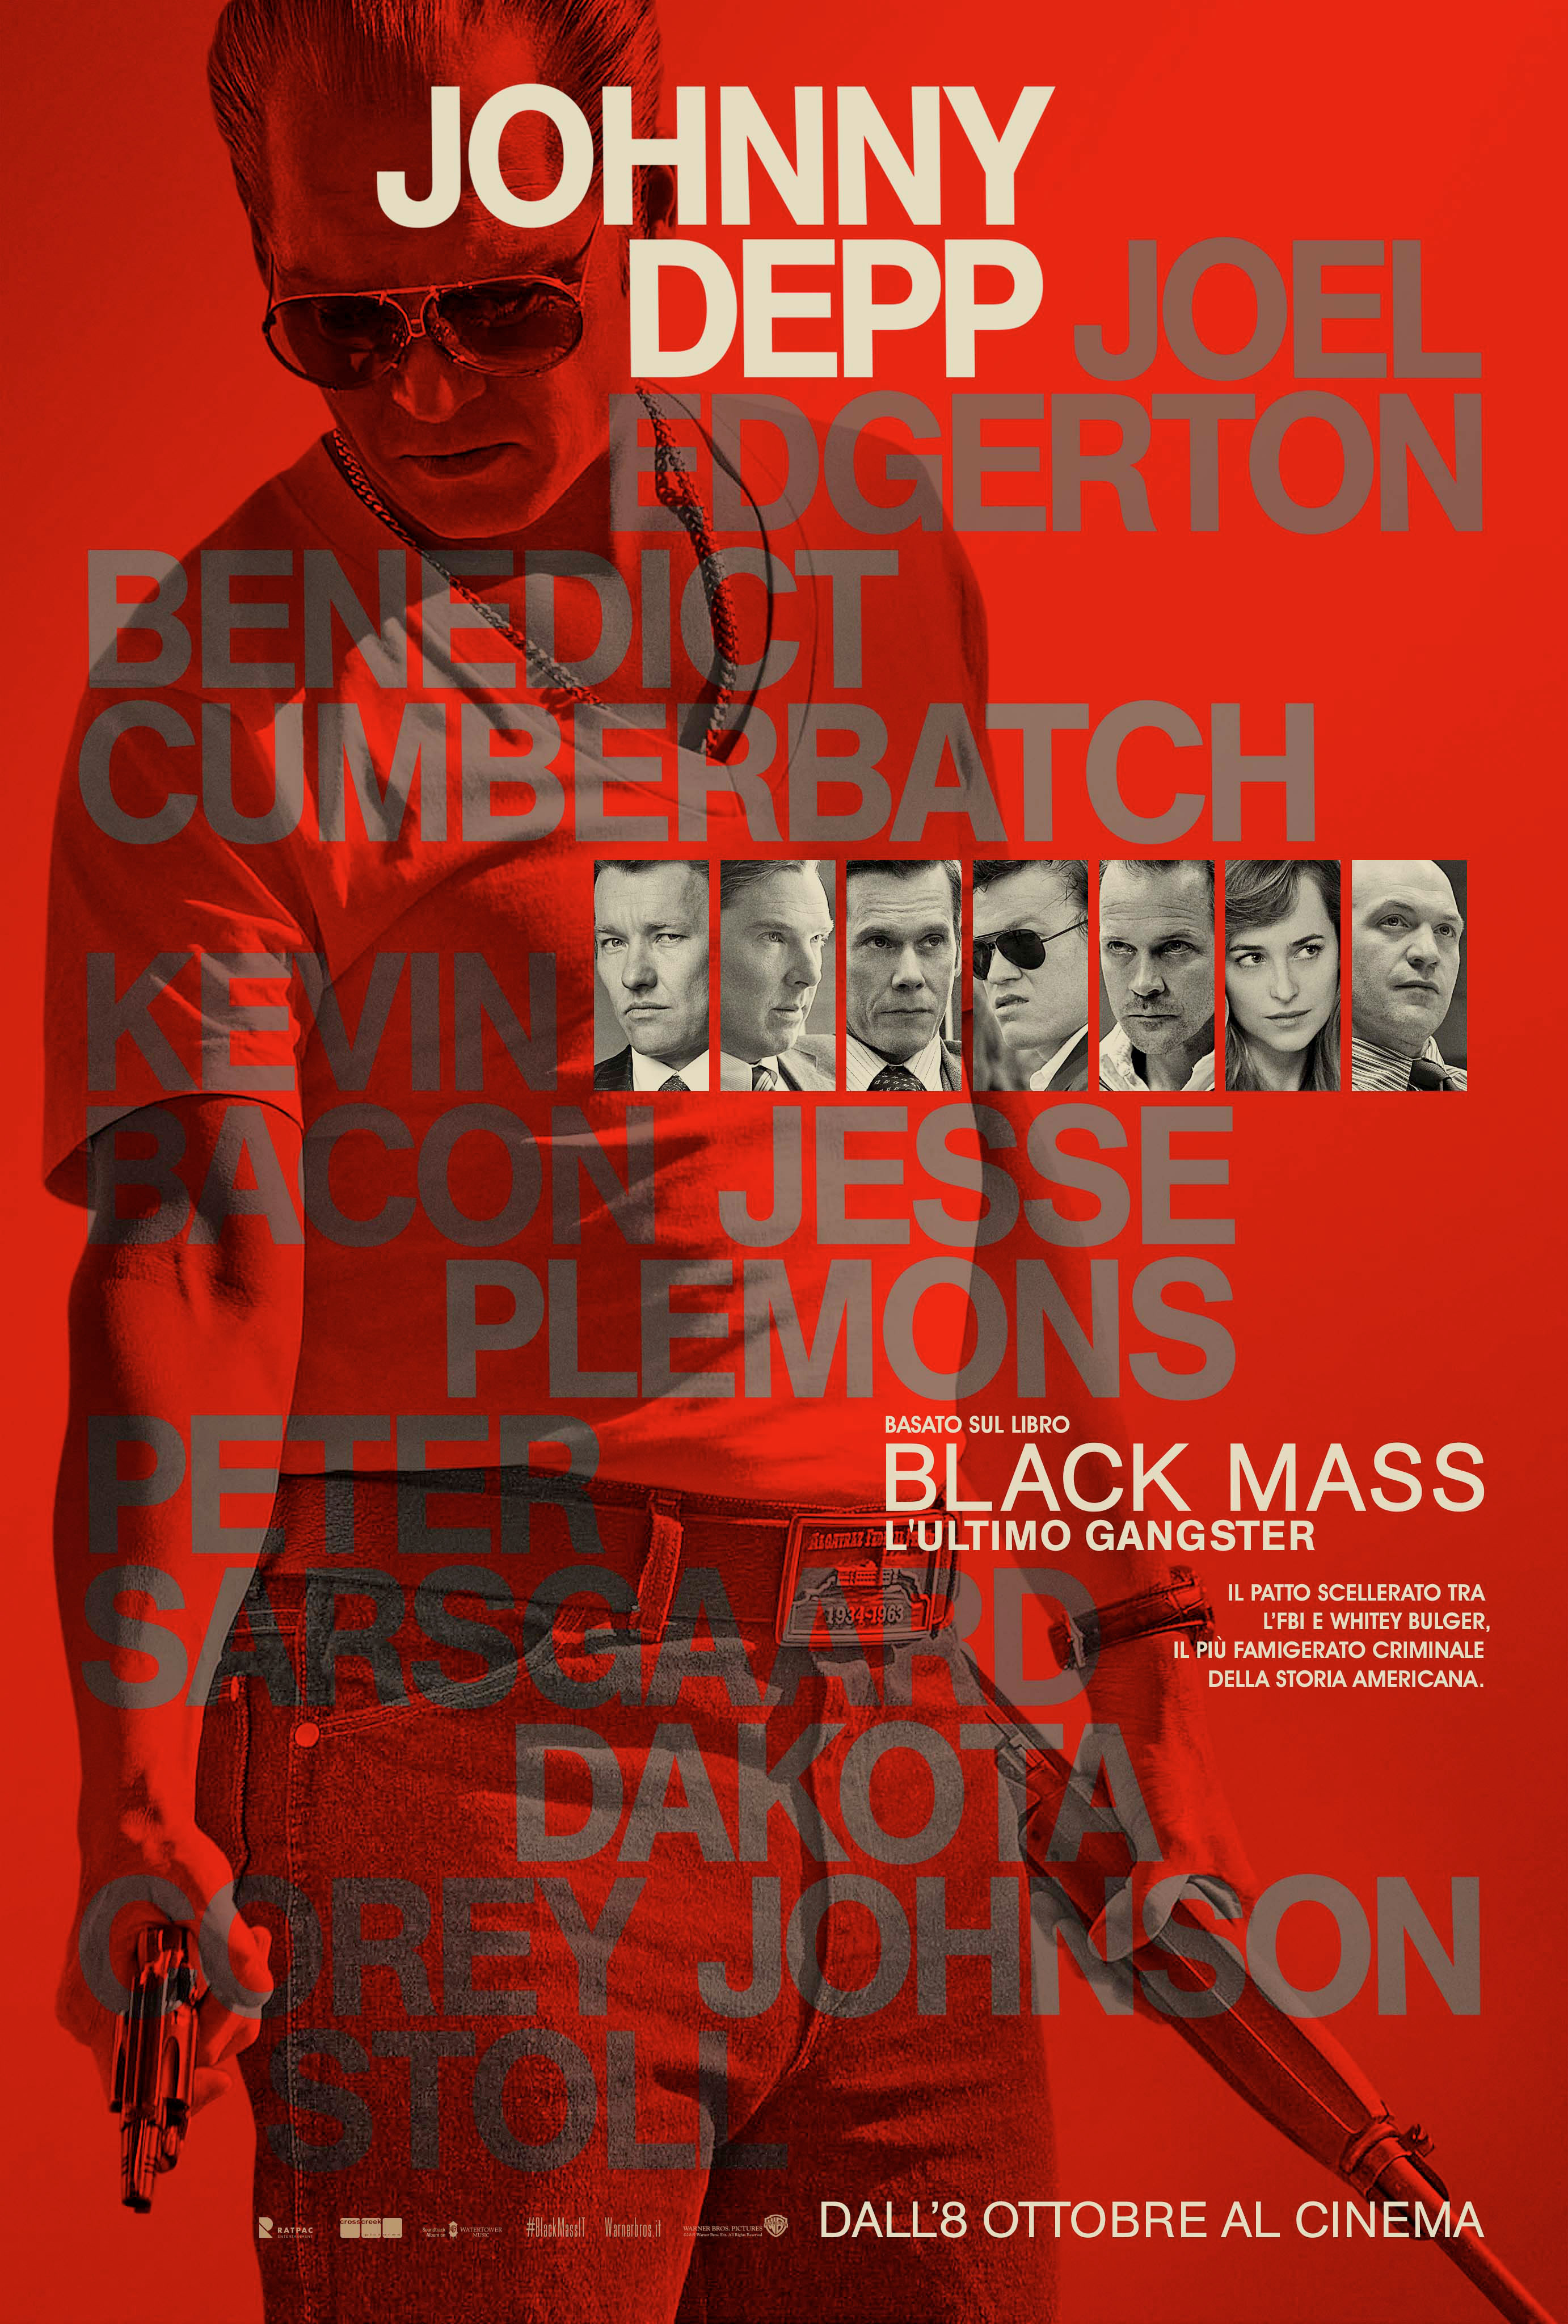 Black Mass - L'ultimo gangster: il character poster di Johnny Depp